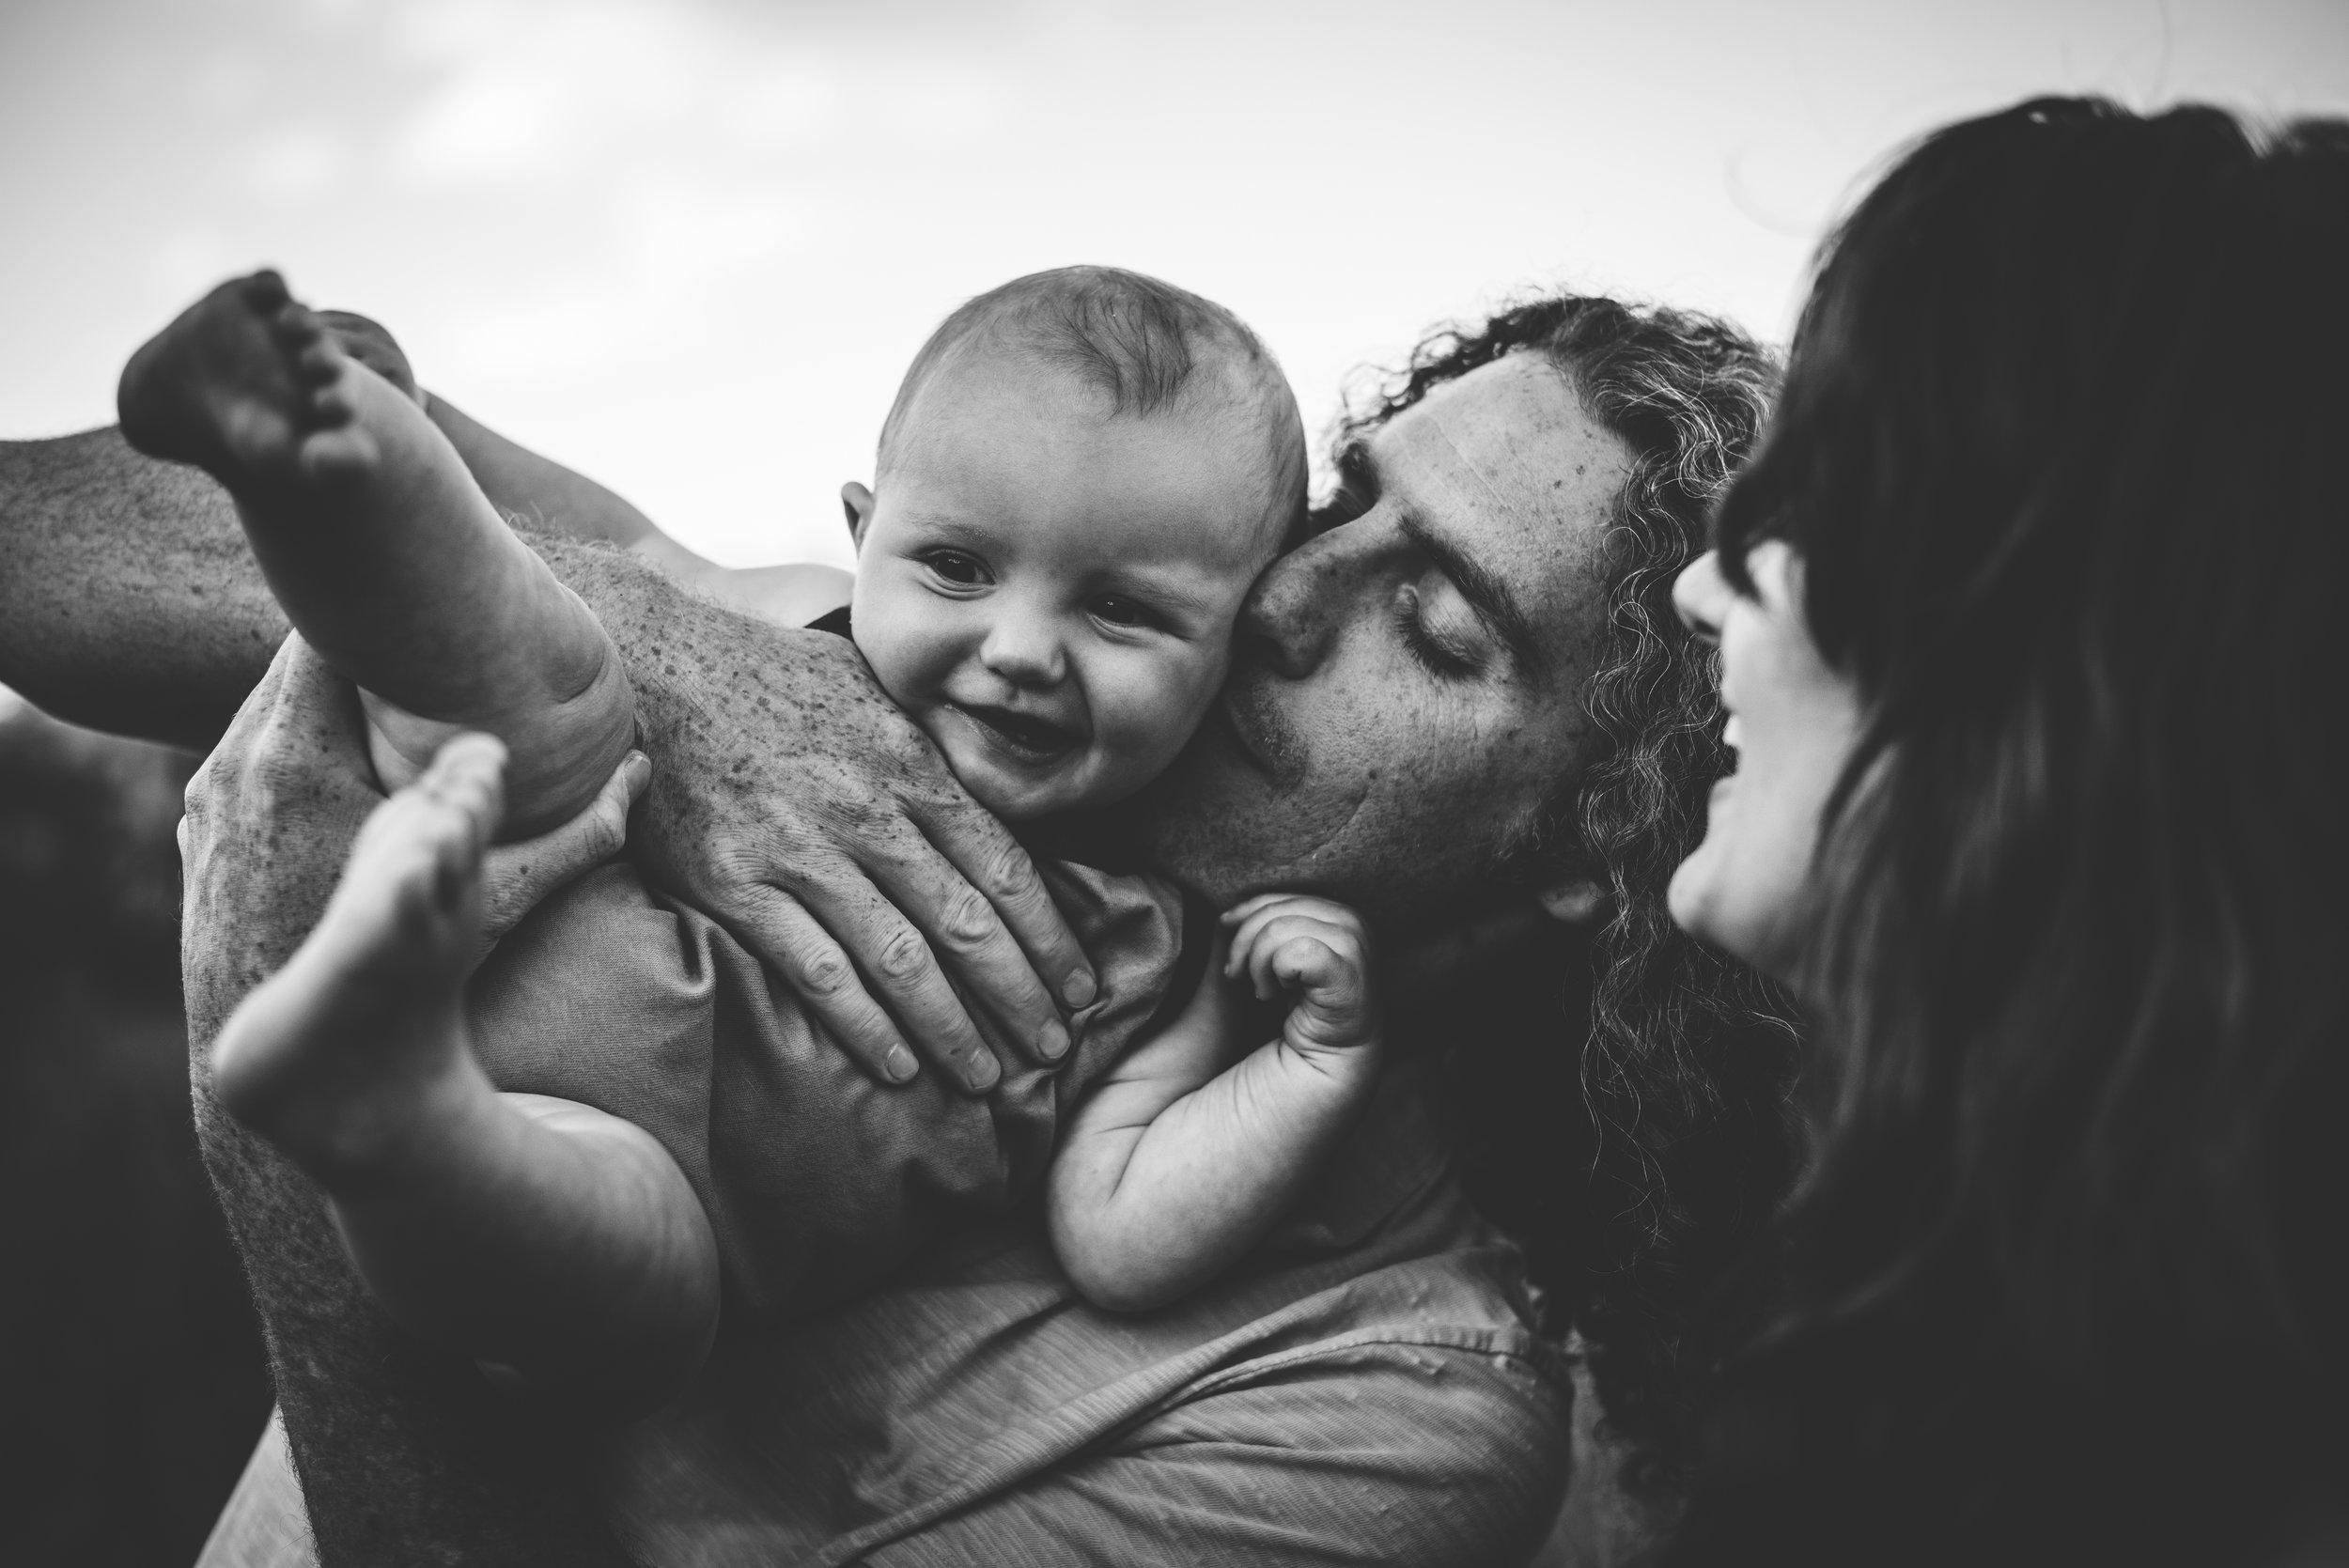 Mom and dad snuggle their son in Garden of the Gods photography session in Colorado Springs.